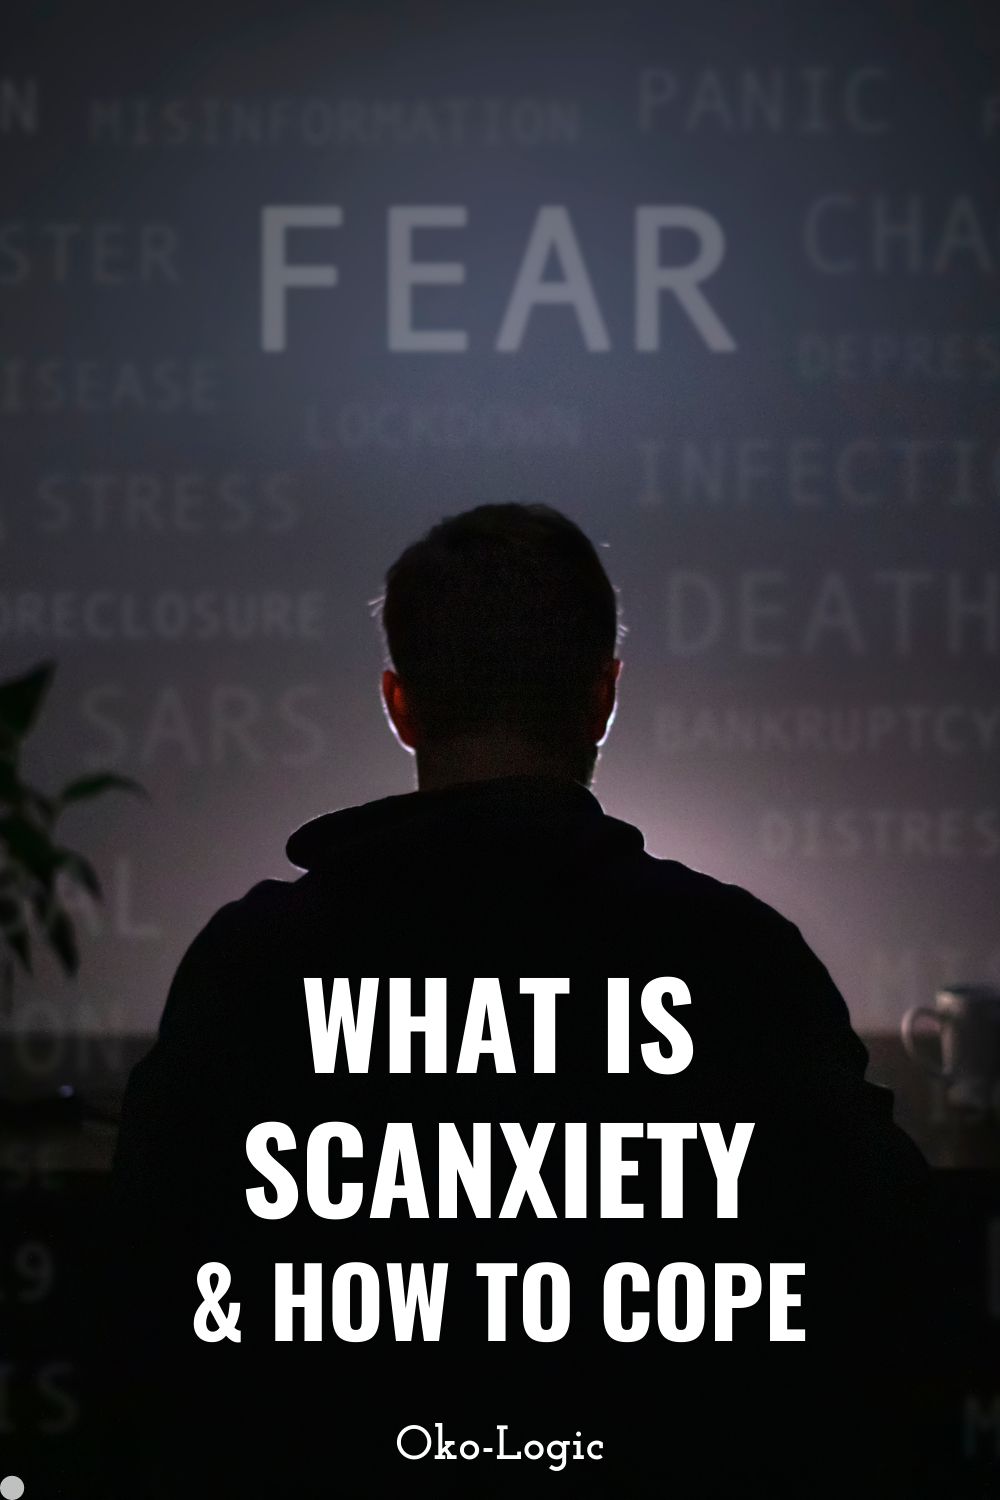 Holy Basil Tincture and Other Tested Ways that Help Cope with Scan Anxiety